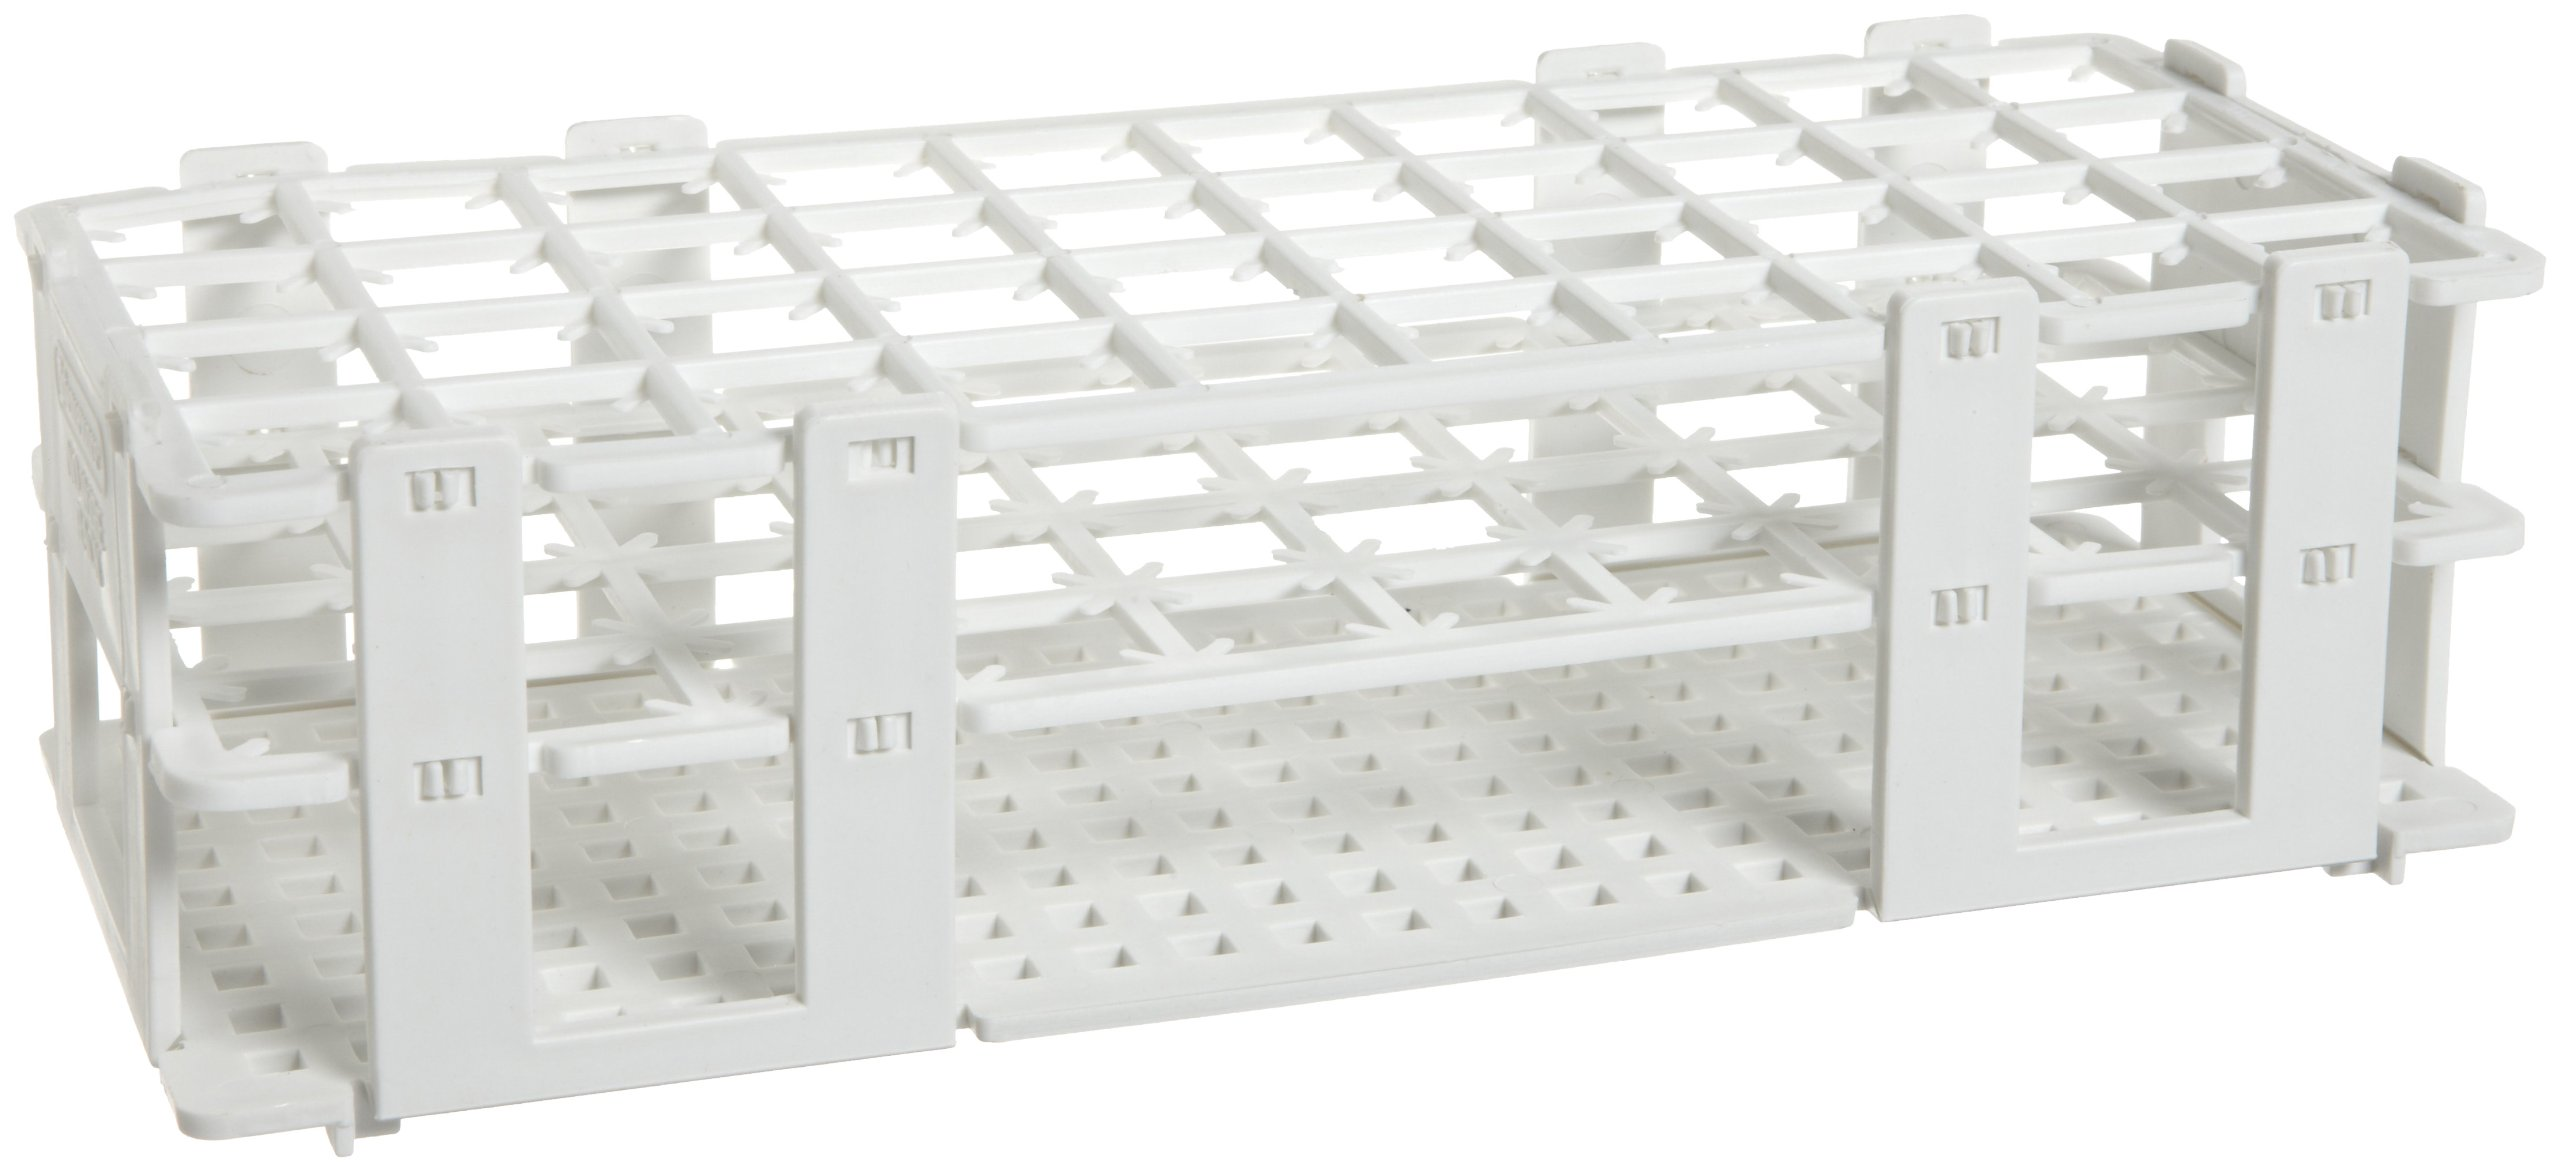 Bel-Art F18749-0002 No-Wire Test Tube Grip Rack; 18-20mm, 40 Places, 9³/₄ x 4¹/₈ x 2³/₄ in., Polypropylene